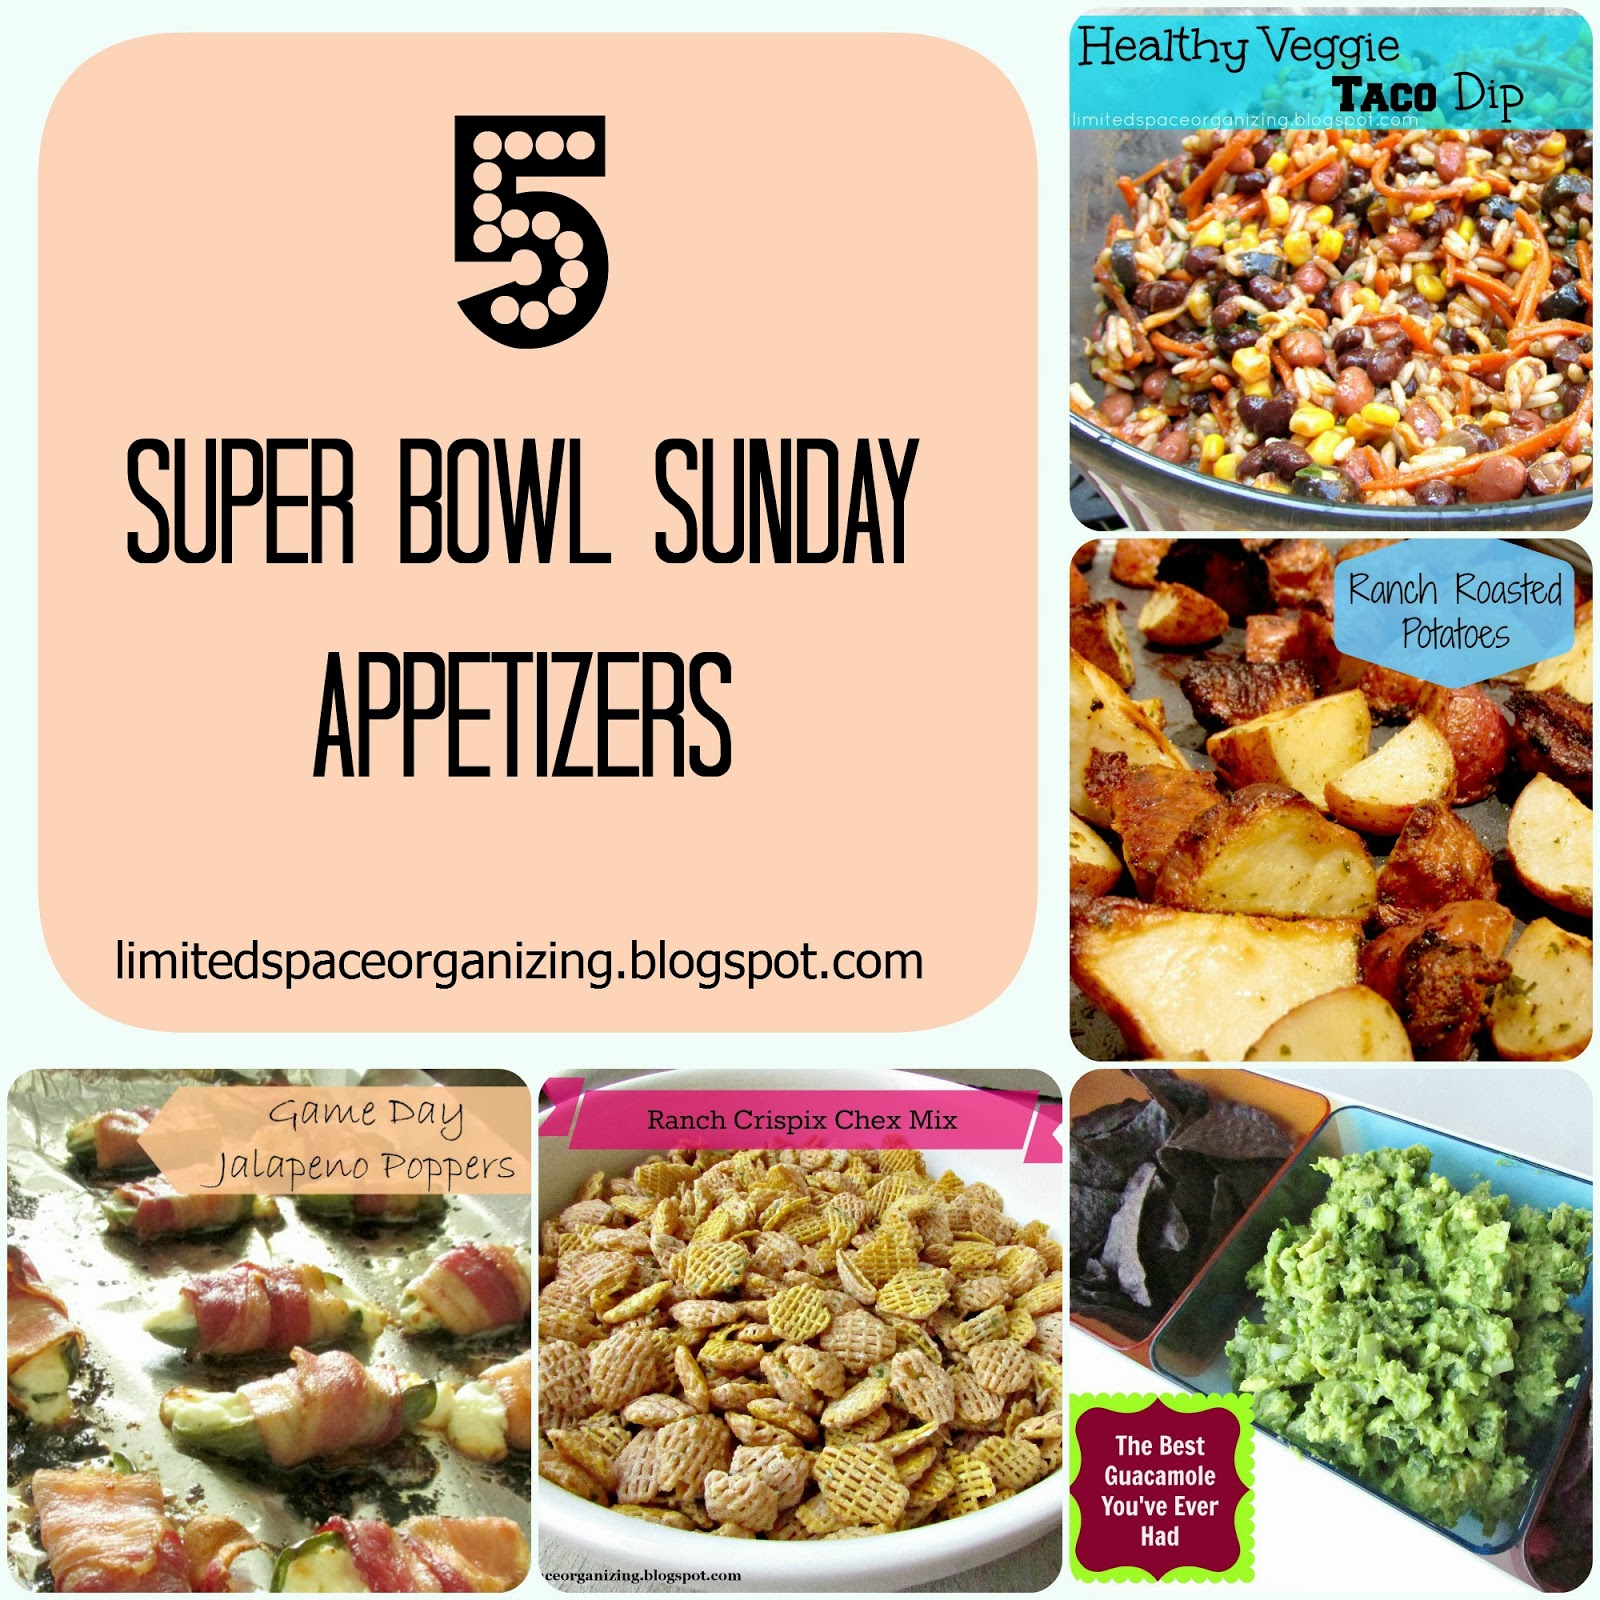 5 Super Bowl Sunday Appetizers